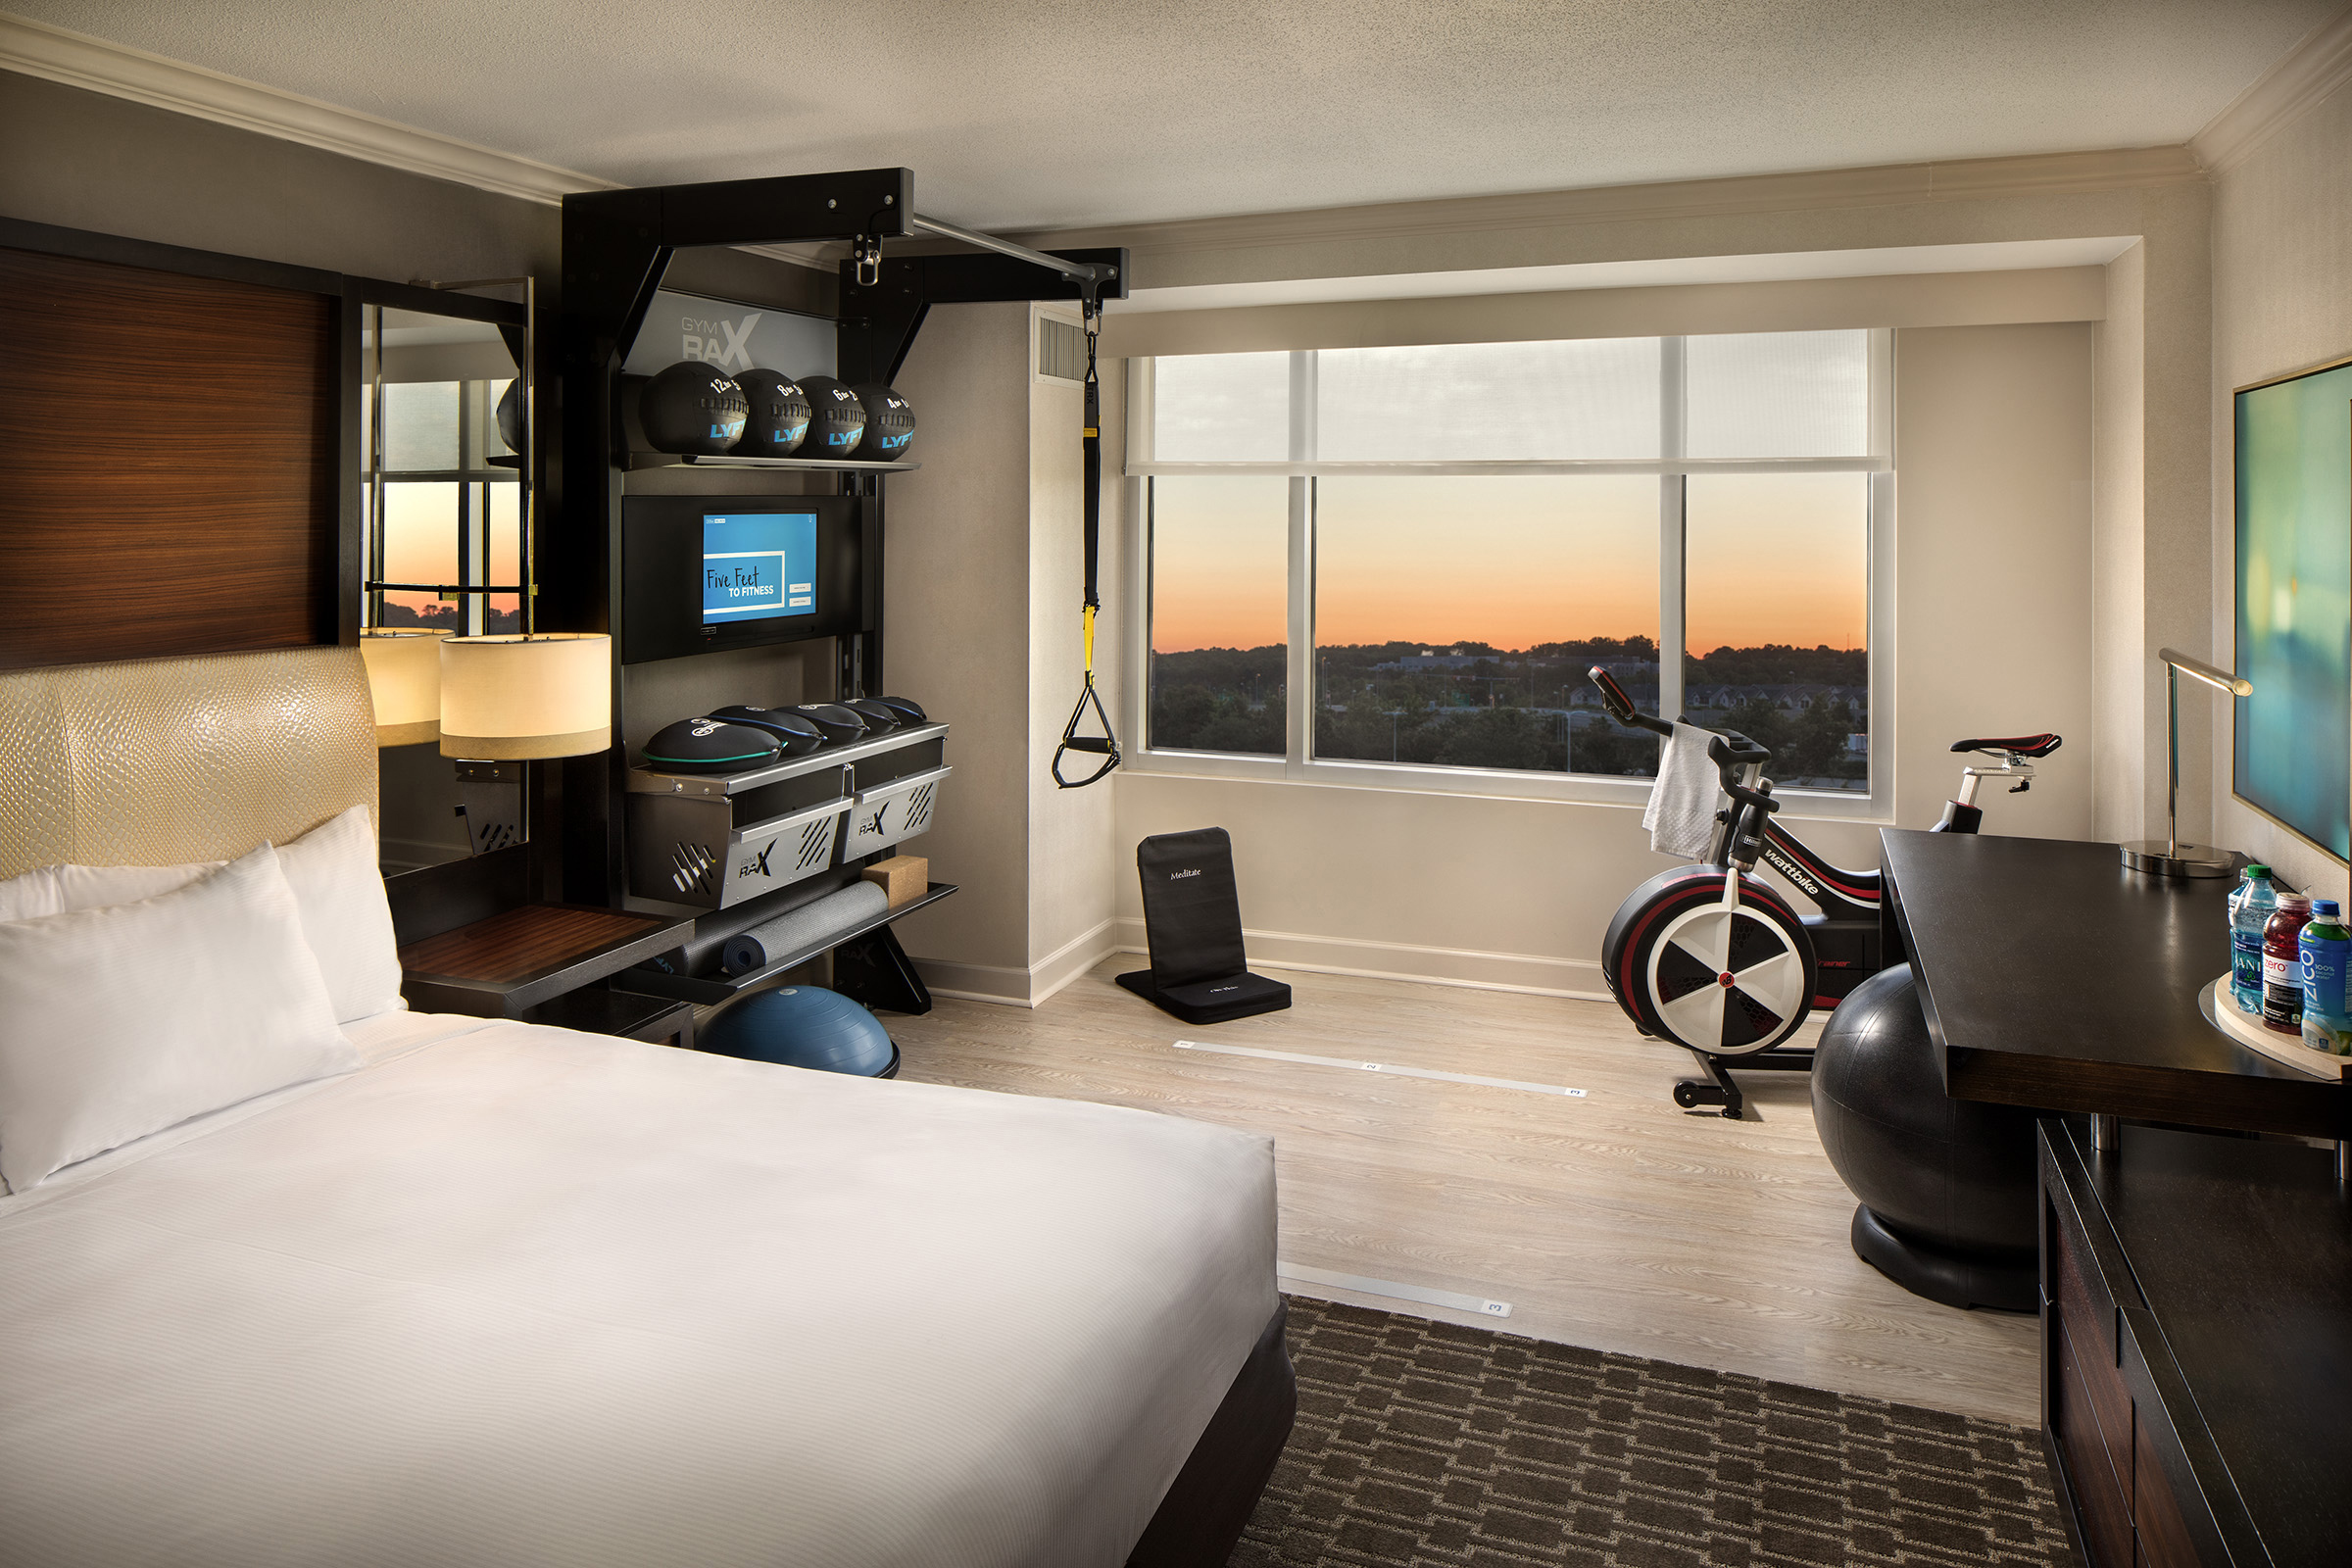 Hilton's Five Feet to Fitness guestroom design includes a fully integrated fitness experience.